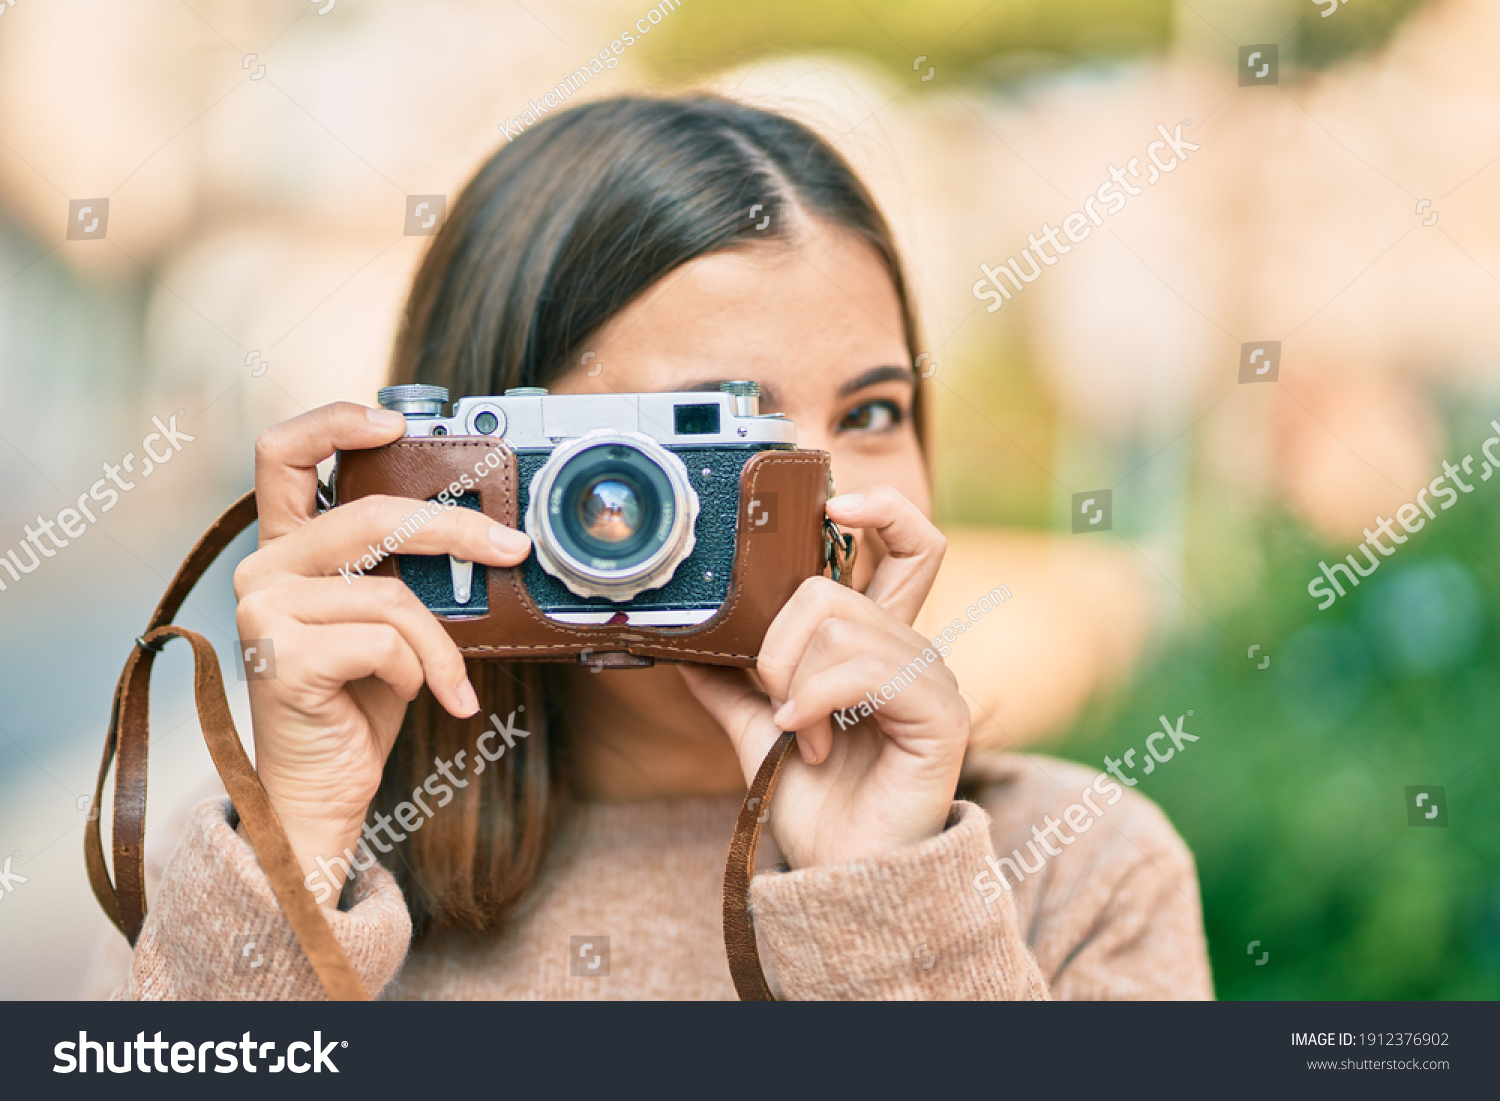 Young hispanic tourist woman smiling happy using vintage camera at the city. #1912376902